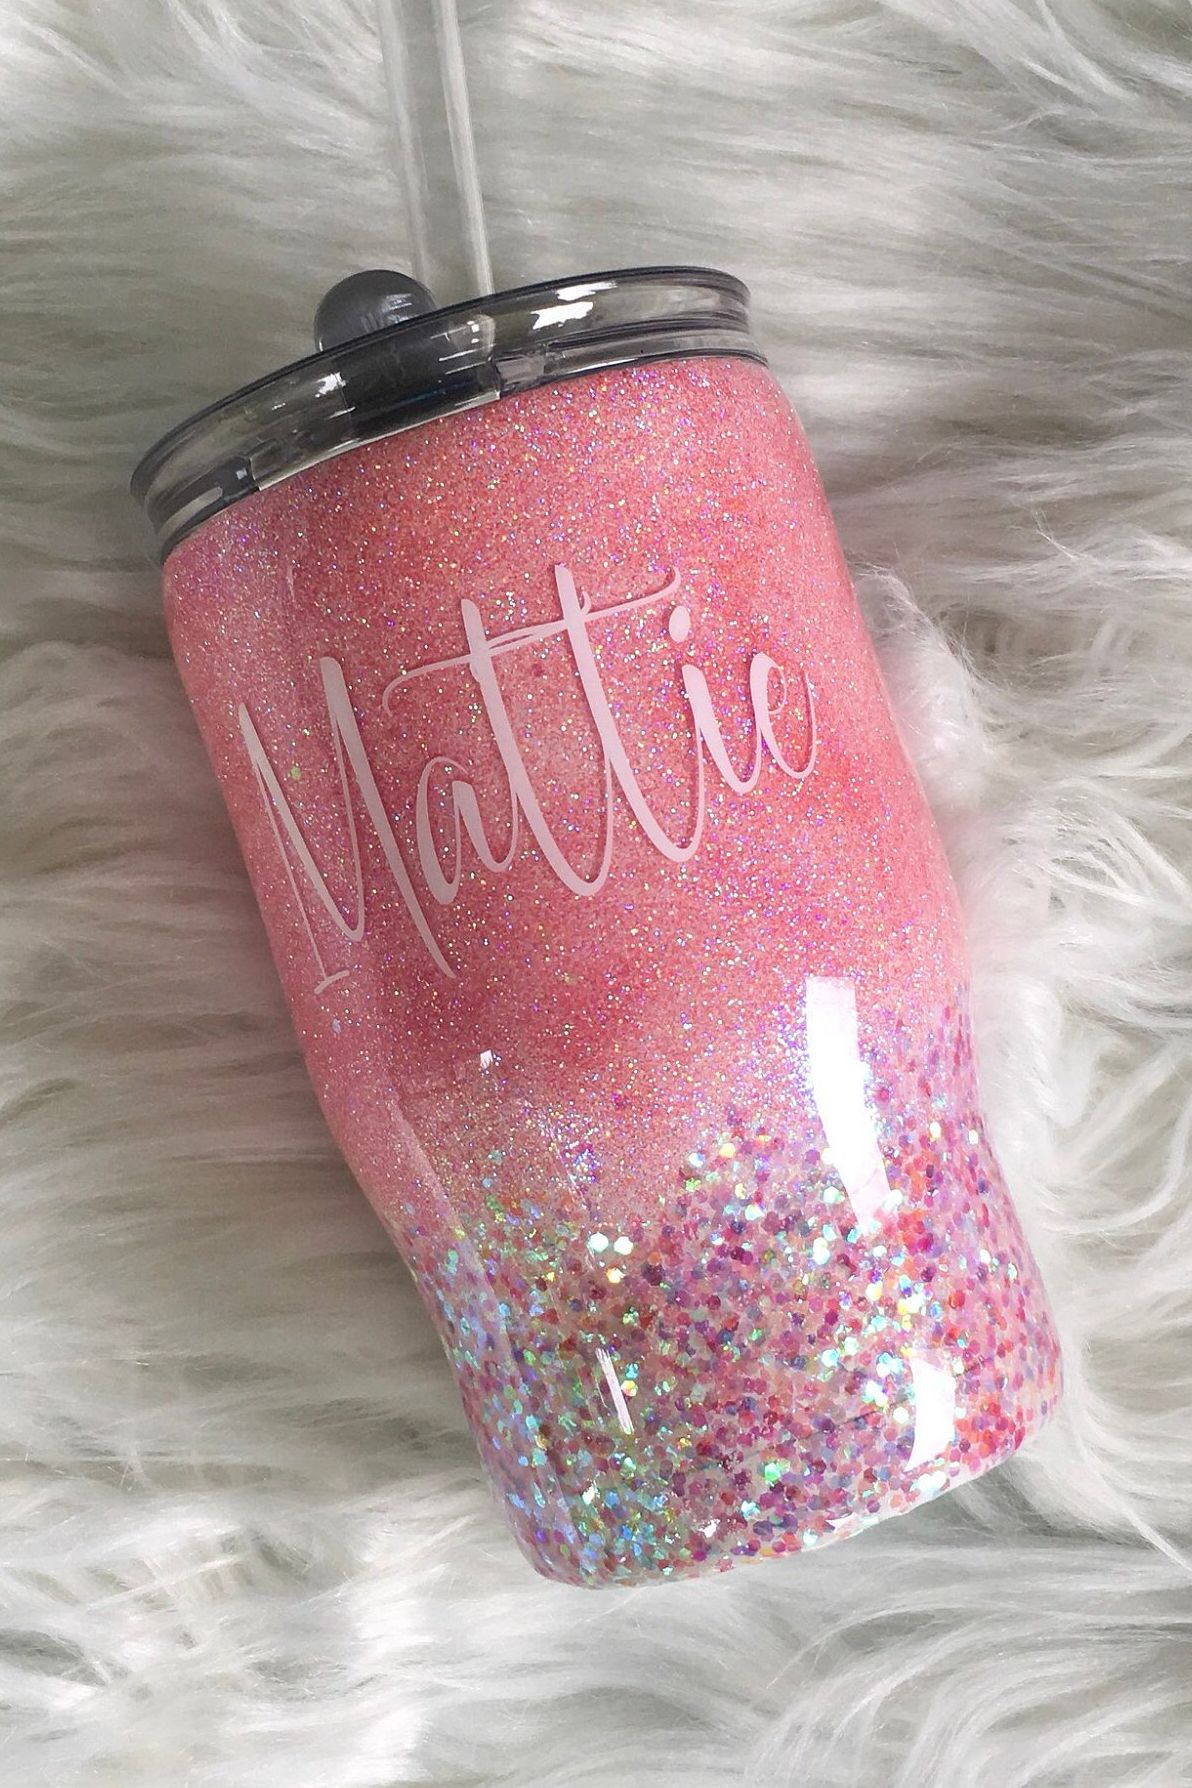 69336336c29 Excited to share this item from my #etsy shop: Glitter Tumbler,  Personalized Glitter Tumbler, Kids Glitter Tumbler, Personalized Kids Glitter  Tumbler